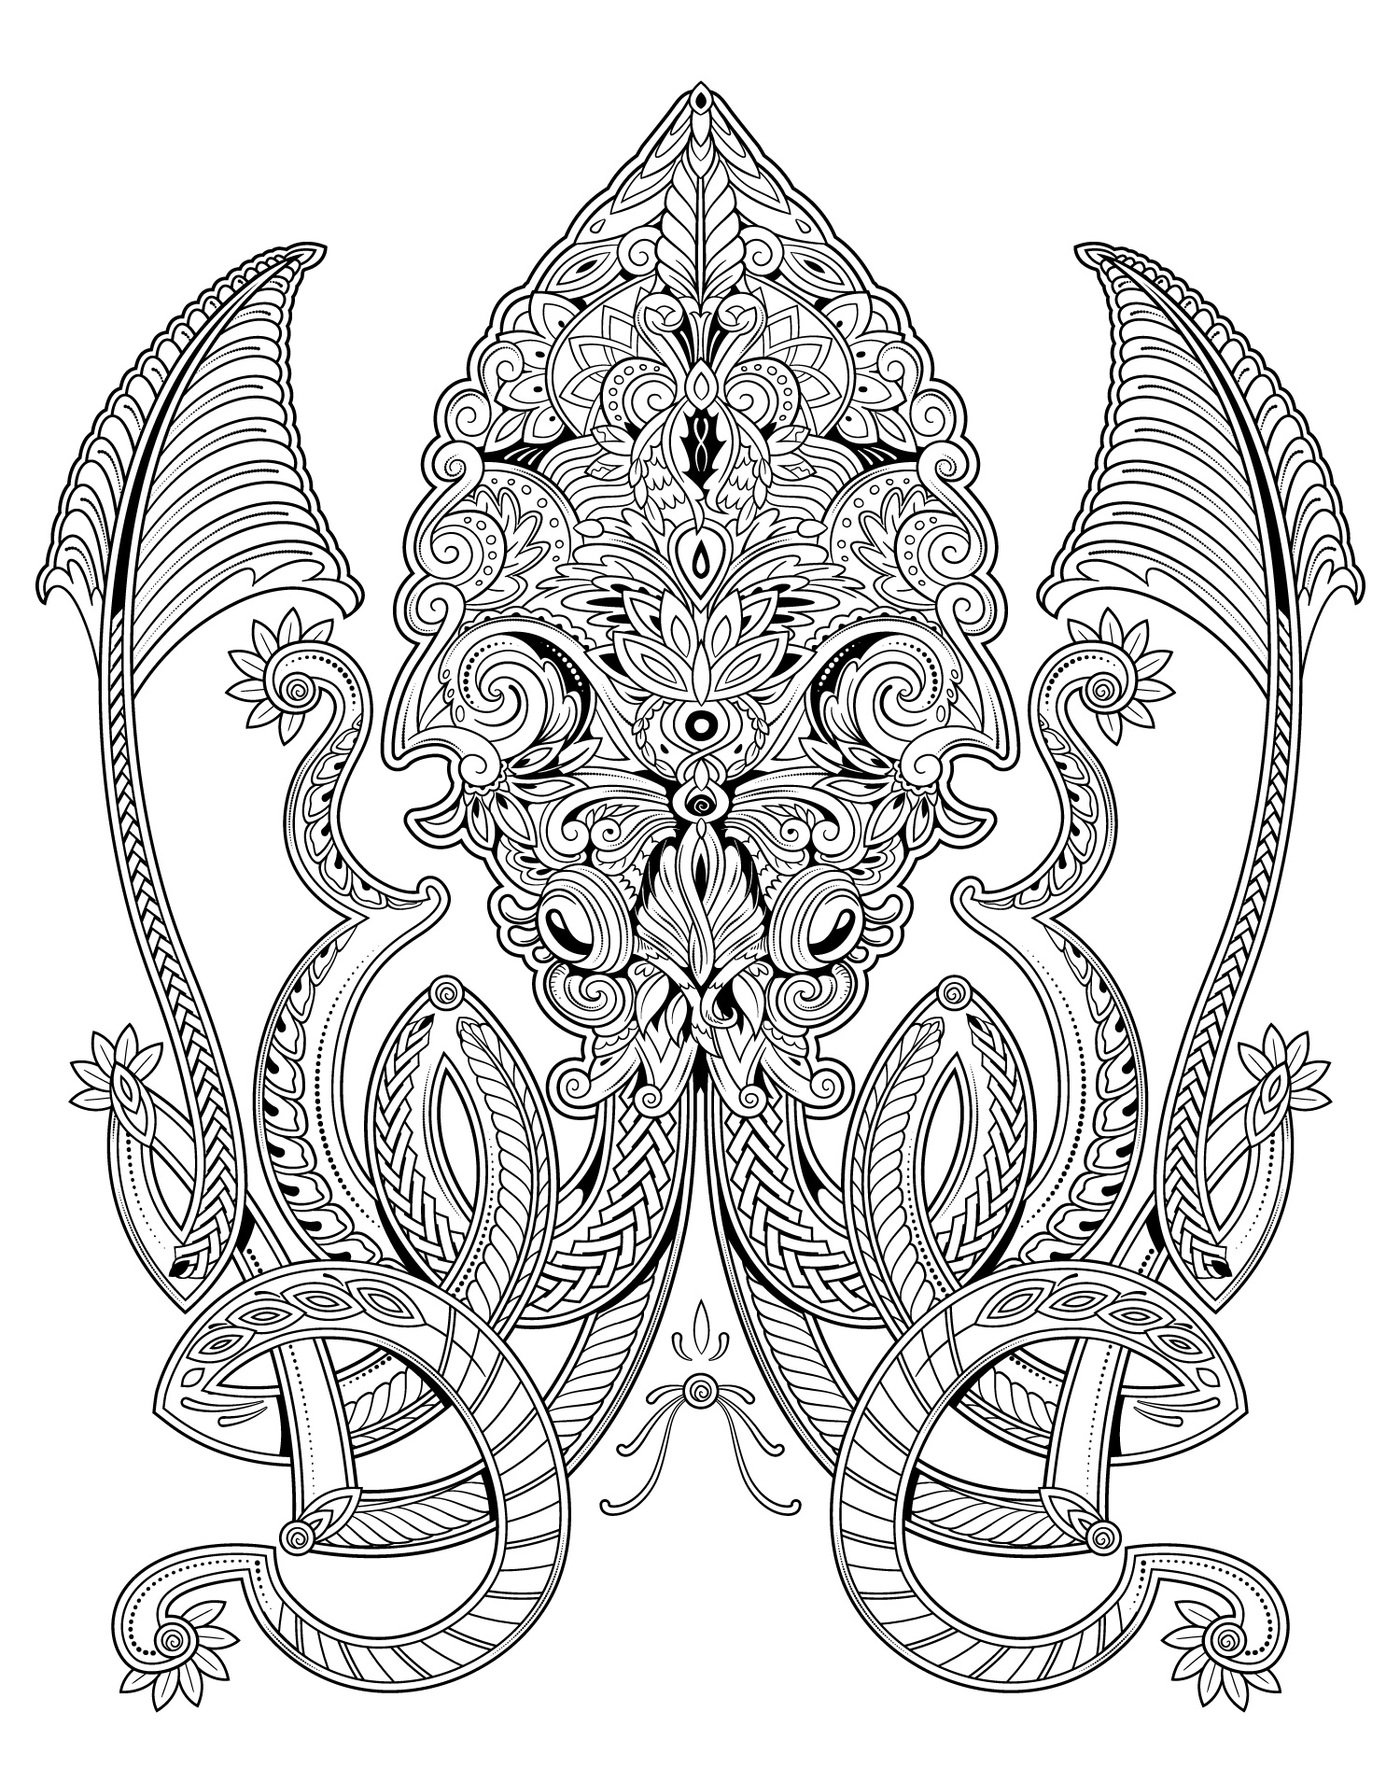 Complex Coloring Pages By Mischell Meech Yost At Coroflot Com